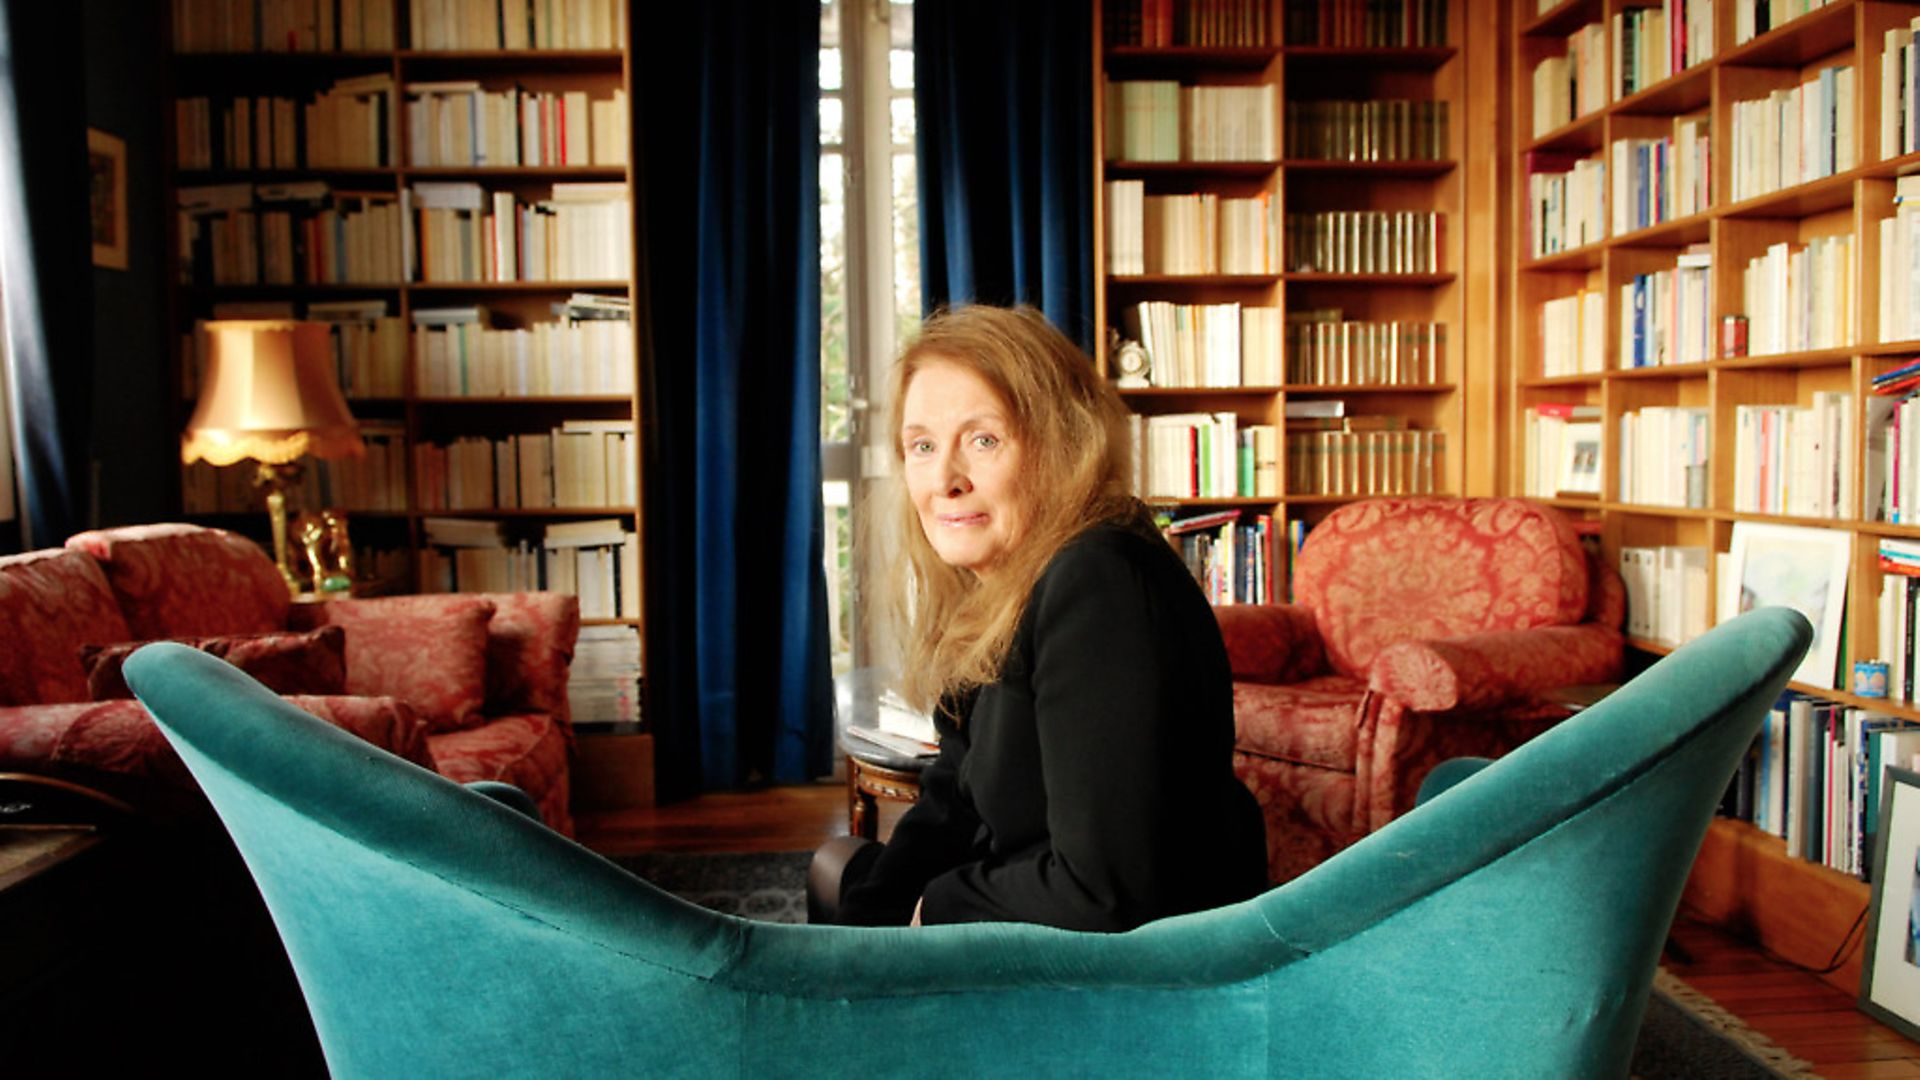 French writer Annie Ernaux, who has penned 'I Remain In Darkness'. Picture: Ulf Andersen/Getty Images - Credit: Getty Images